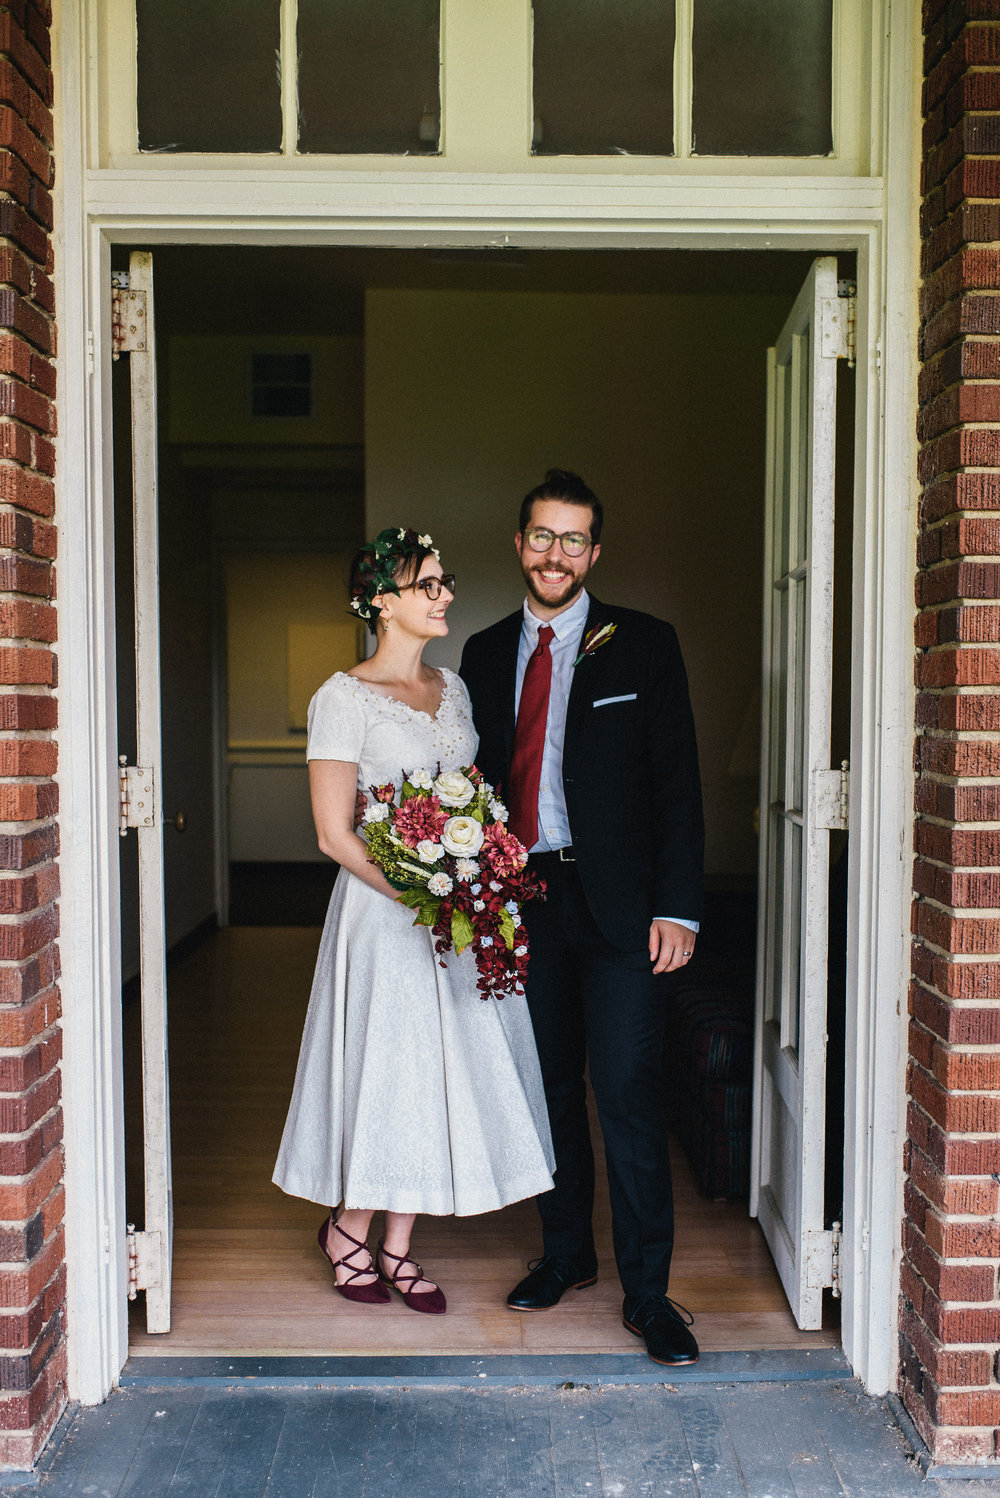 Wake Forest Wedding Photographer - North Carolina Wedding Photographer - New England Wedding Photographer - Boston Wedding Photographer